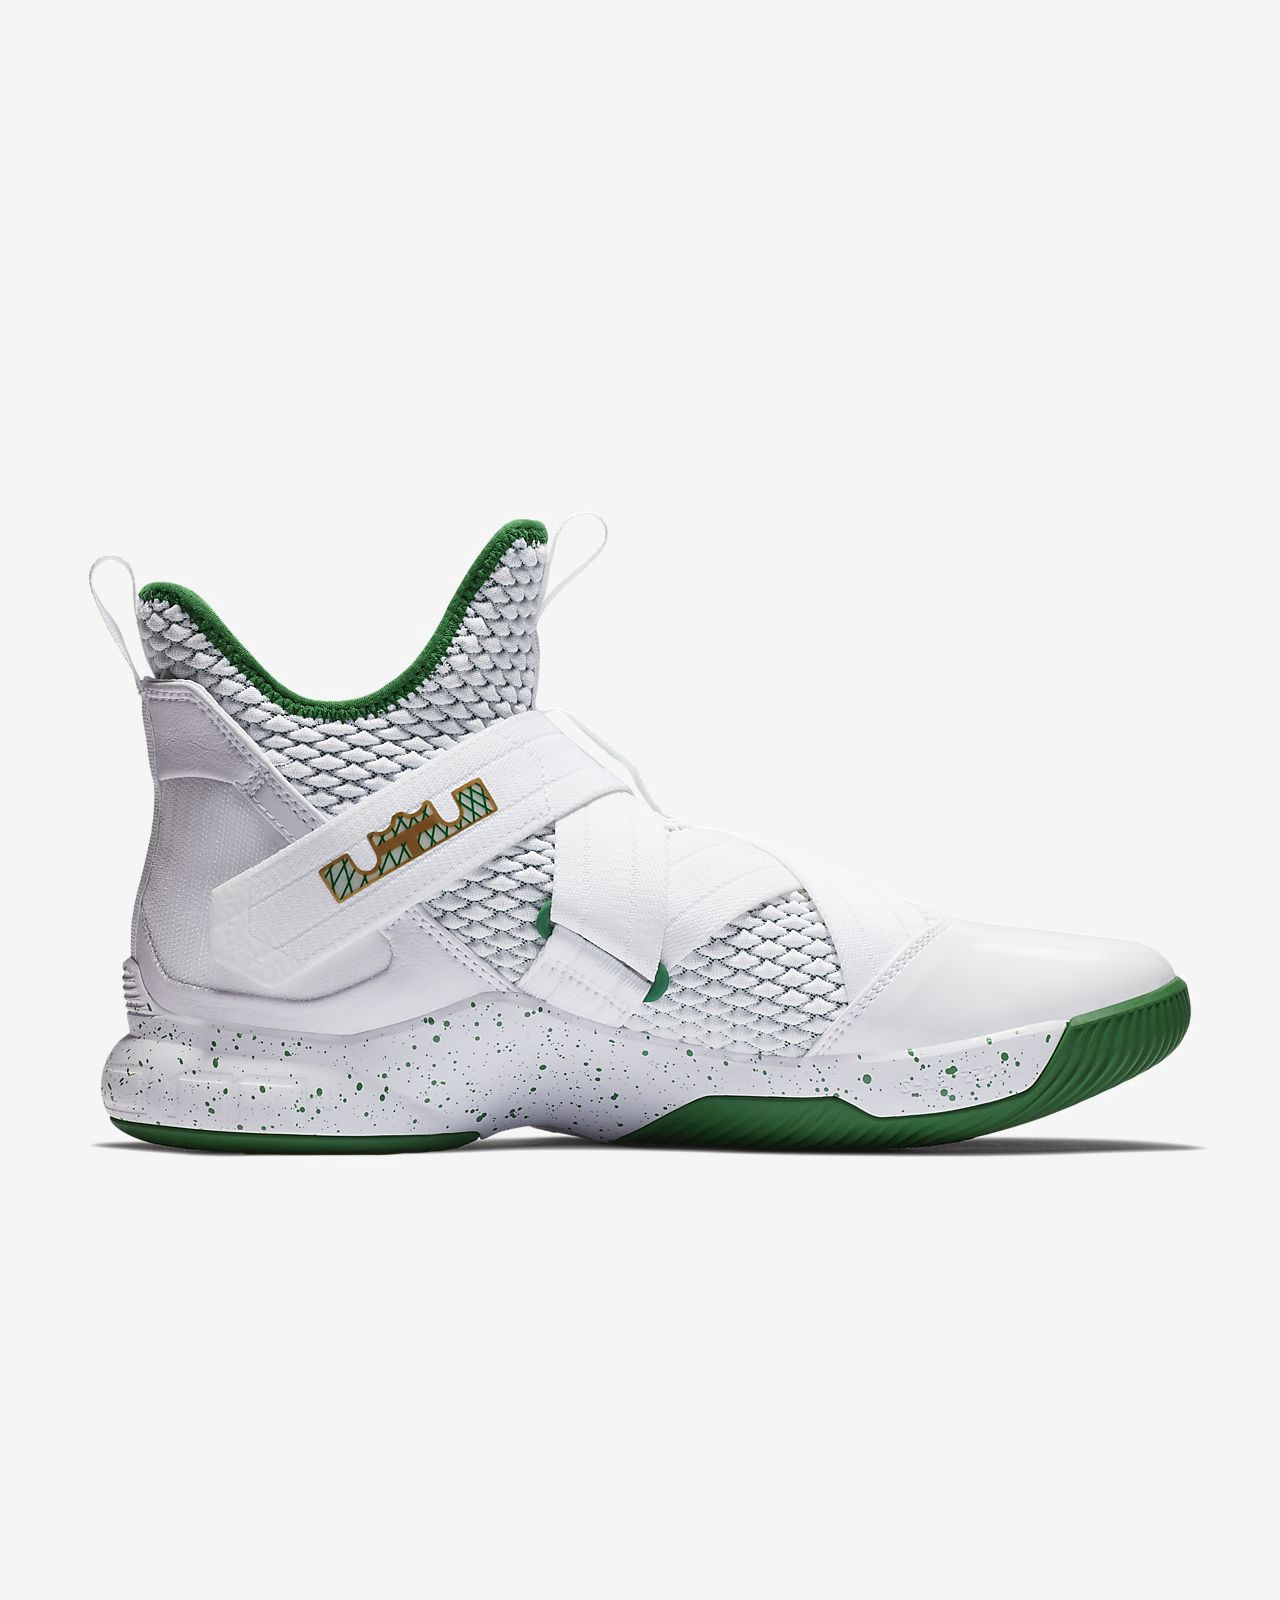 c46a95e2559a Nike Lebron Soldier Xii Svsm Basketball Shoe - M 12   W 13.5 ...